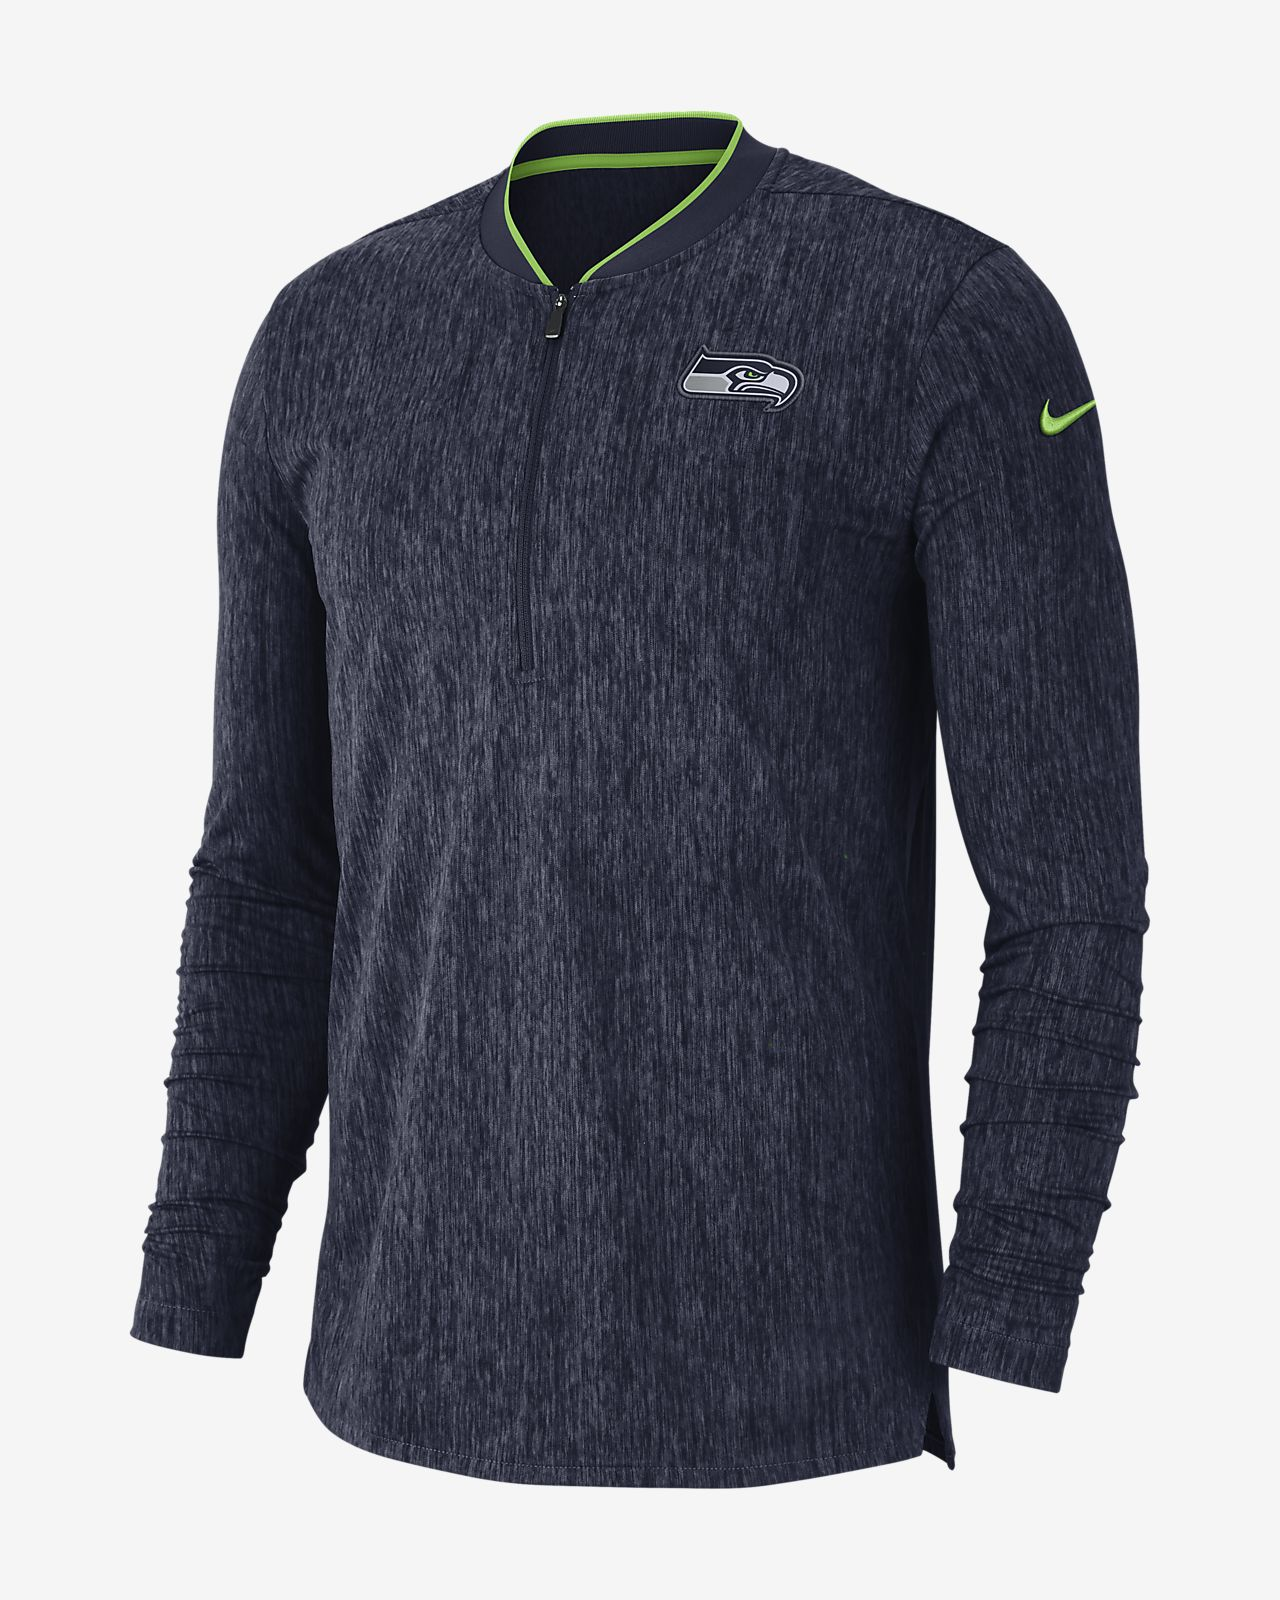 Nike Coach (NFL Seahawks) Men's Half-Zip Long Sleeve Top